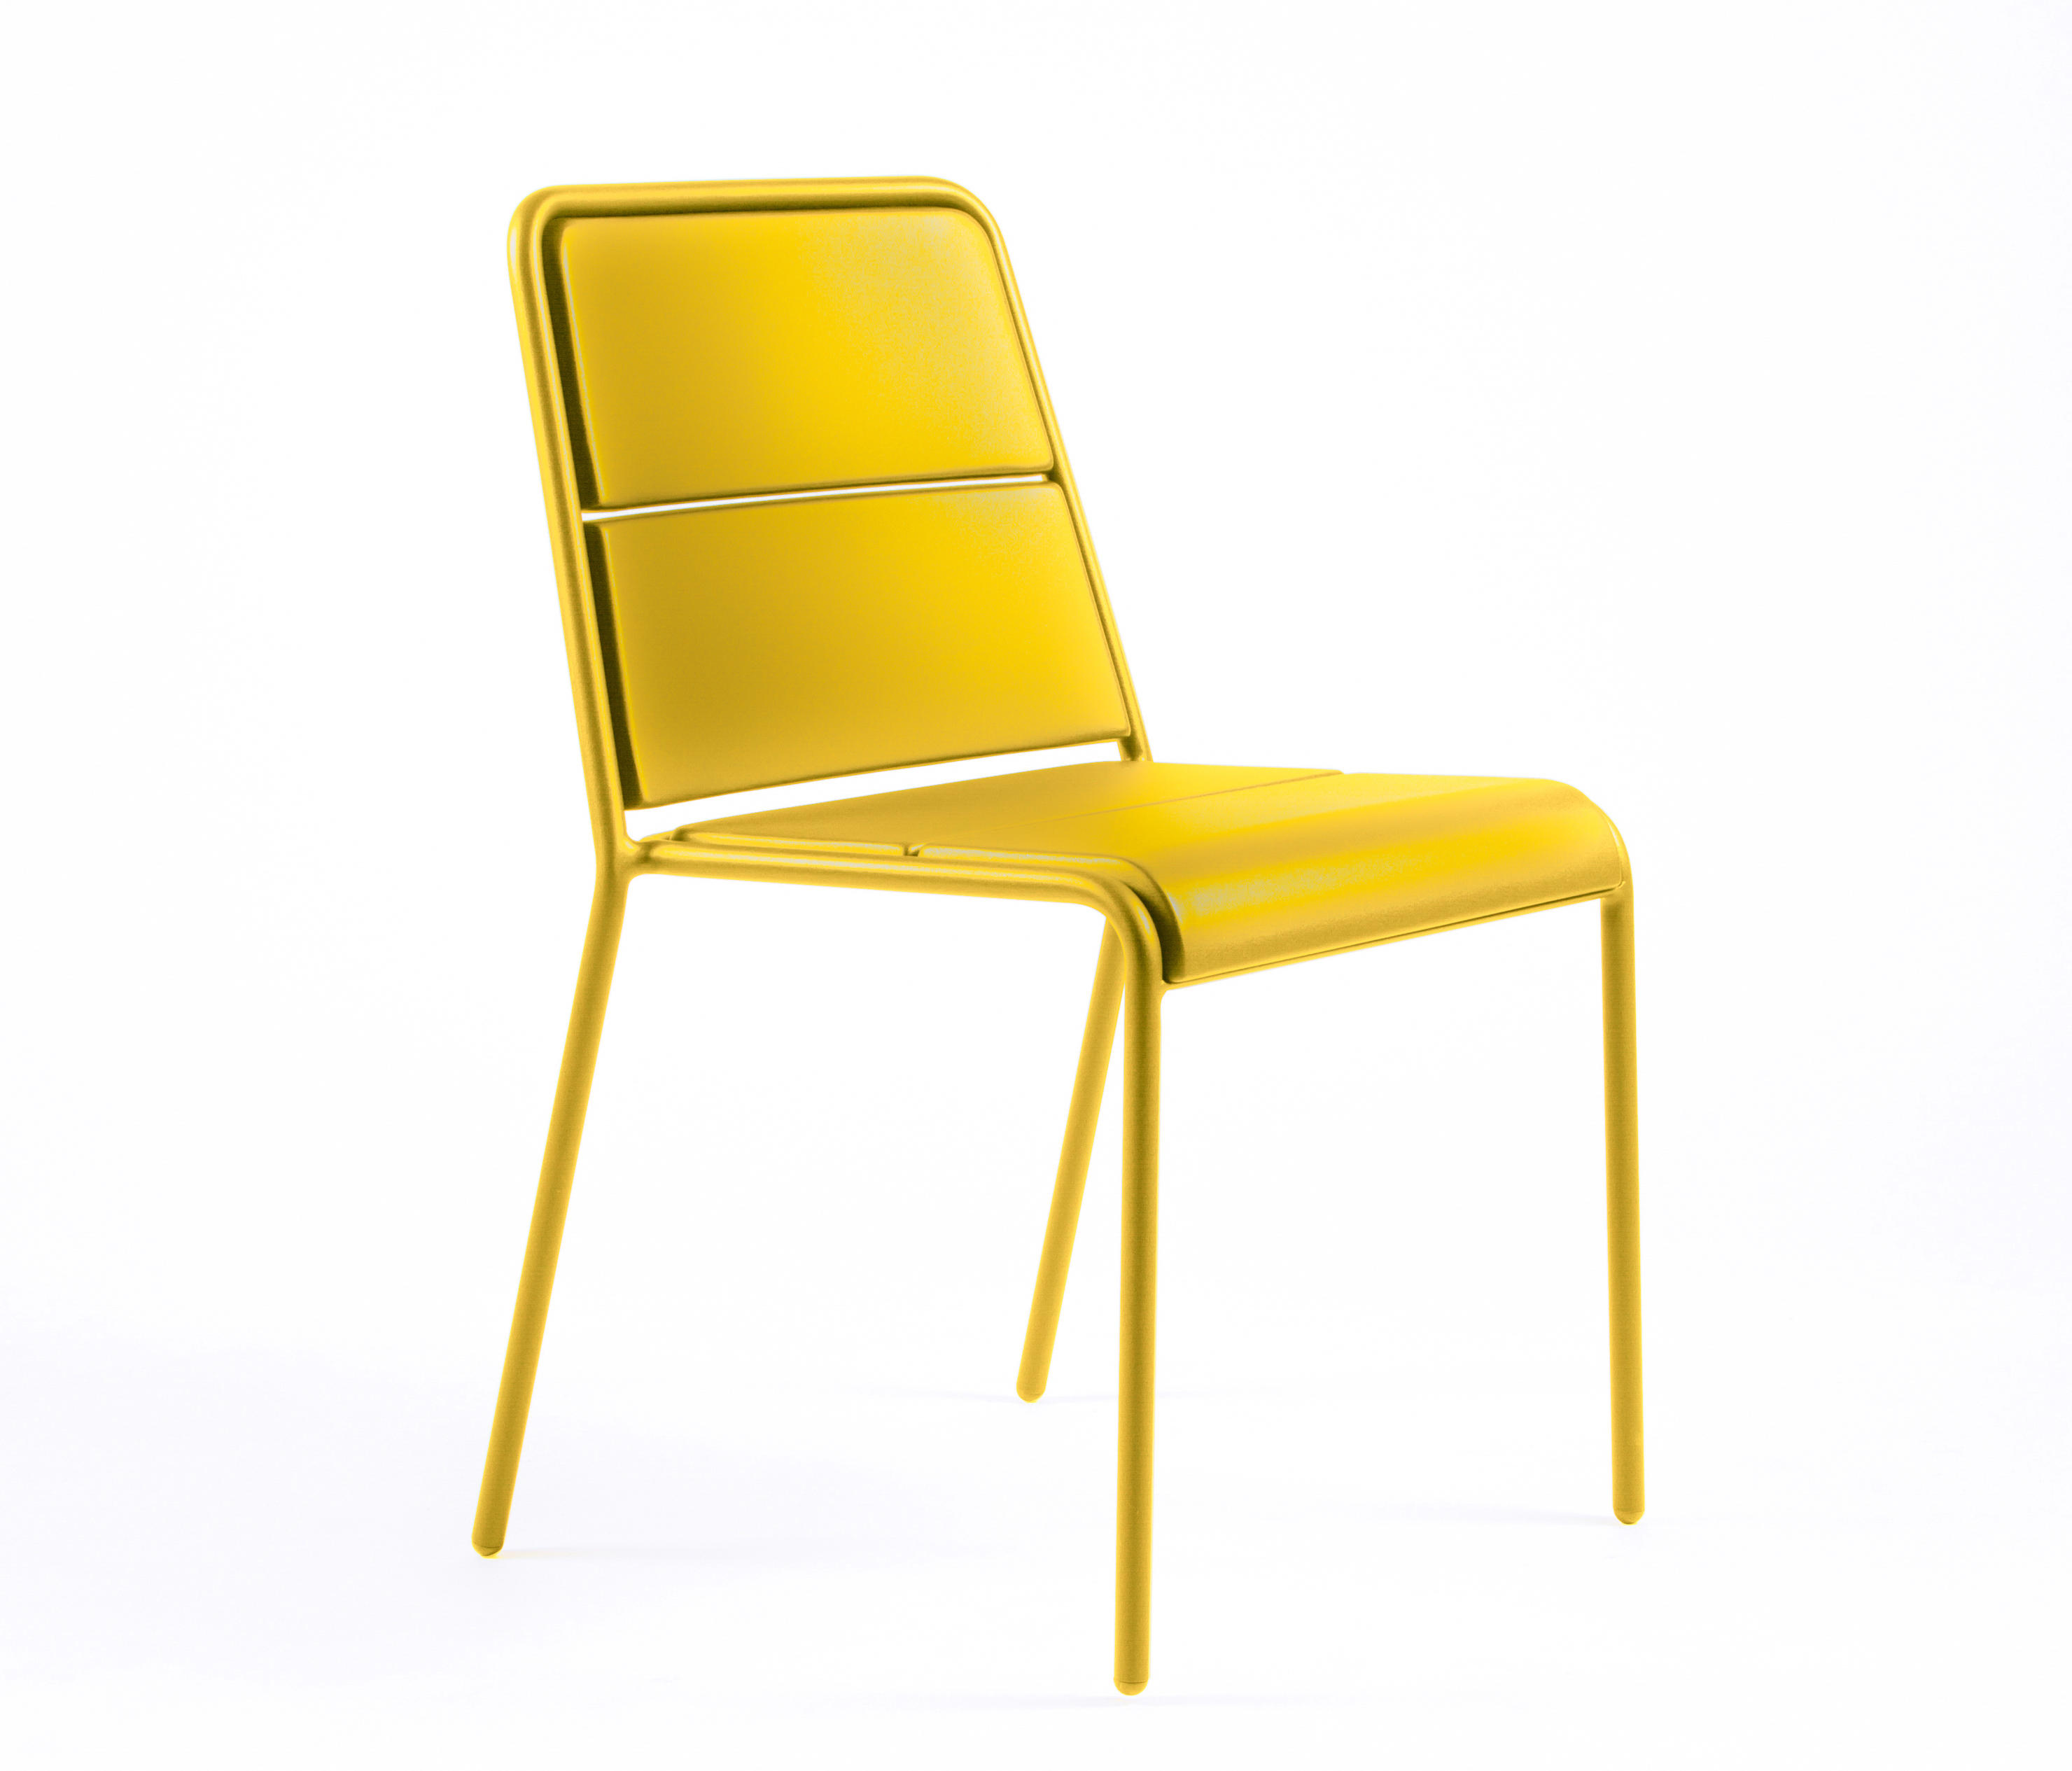 Modern Chairs Top 5 Luxury Fabric Brands Exhibiting At: CP9102 ARMCHAIR - Chairs From Maiori Design